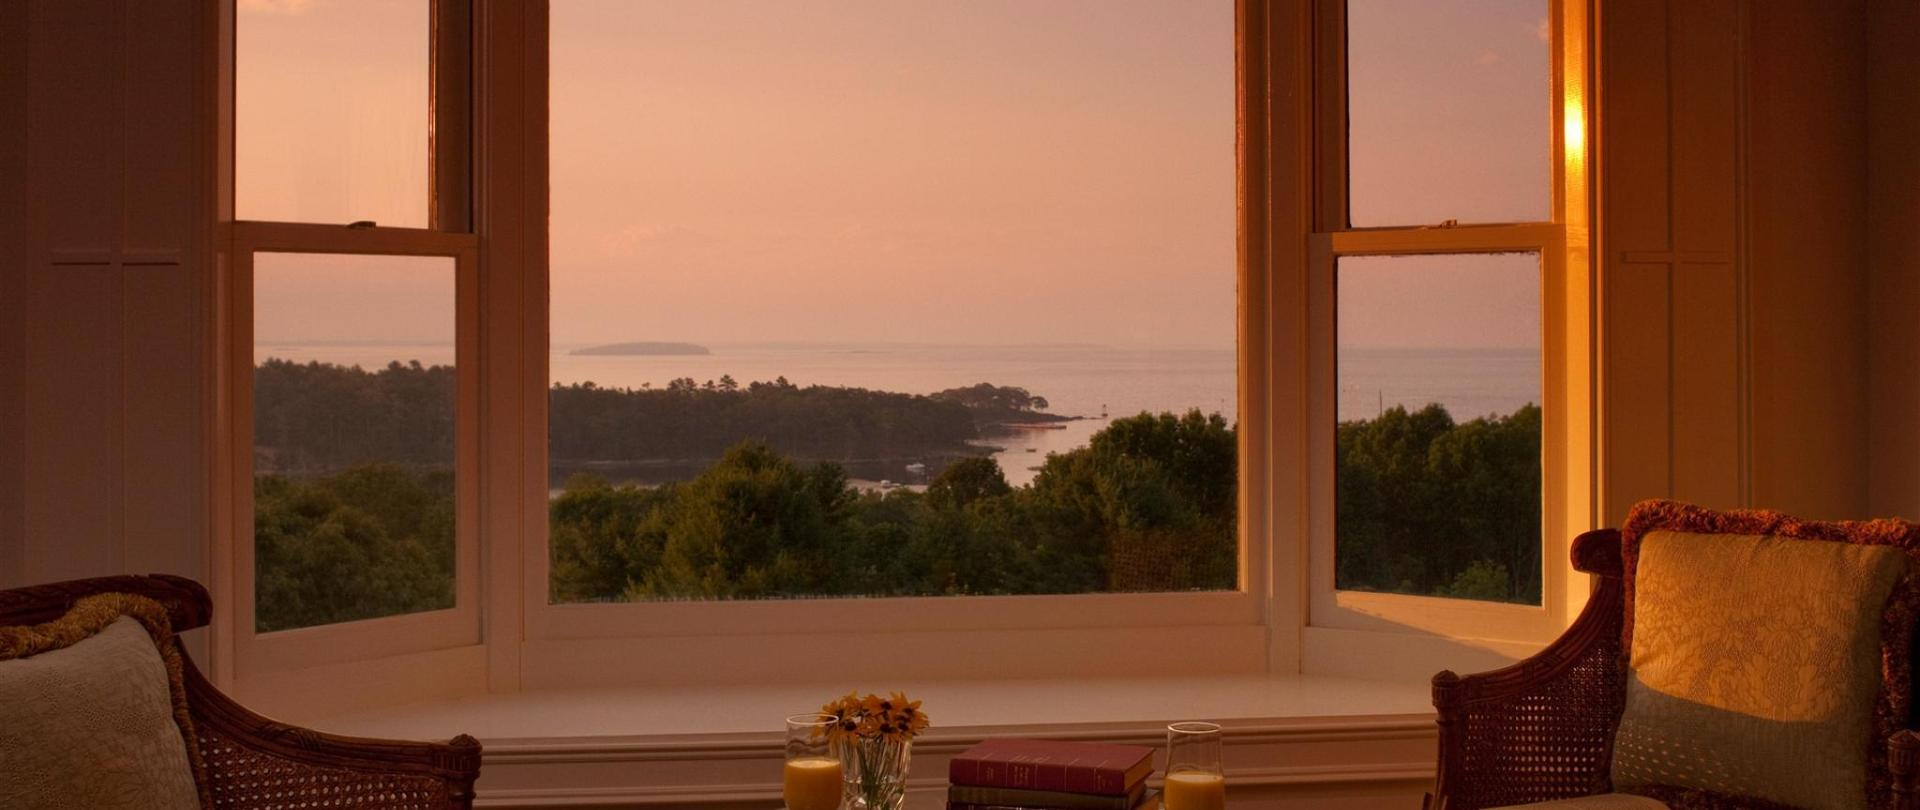 Norumbega Penthouse Suite view of Penobscot Bay